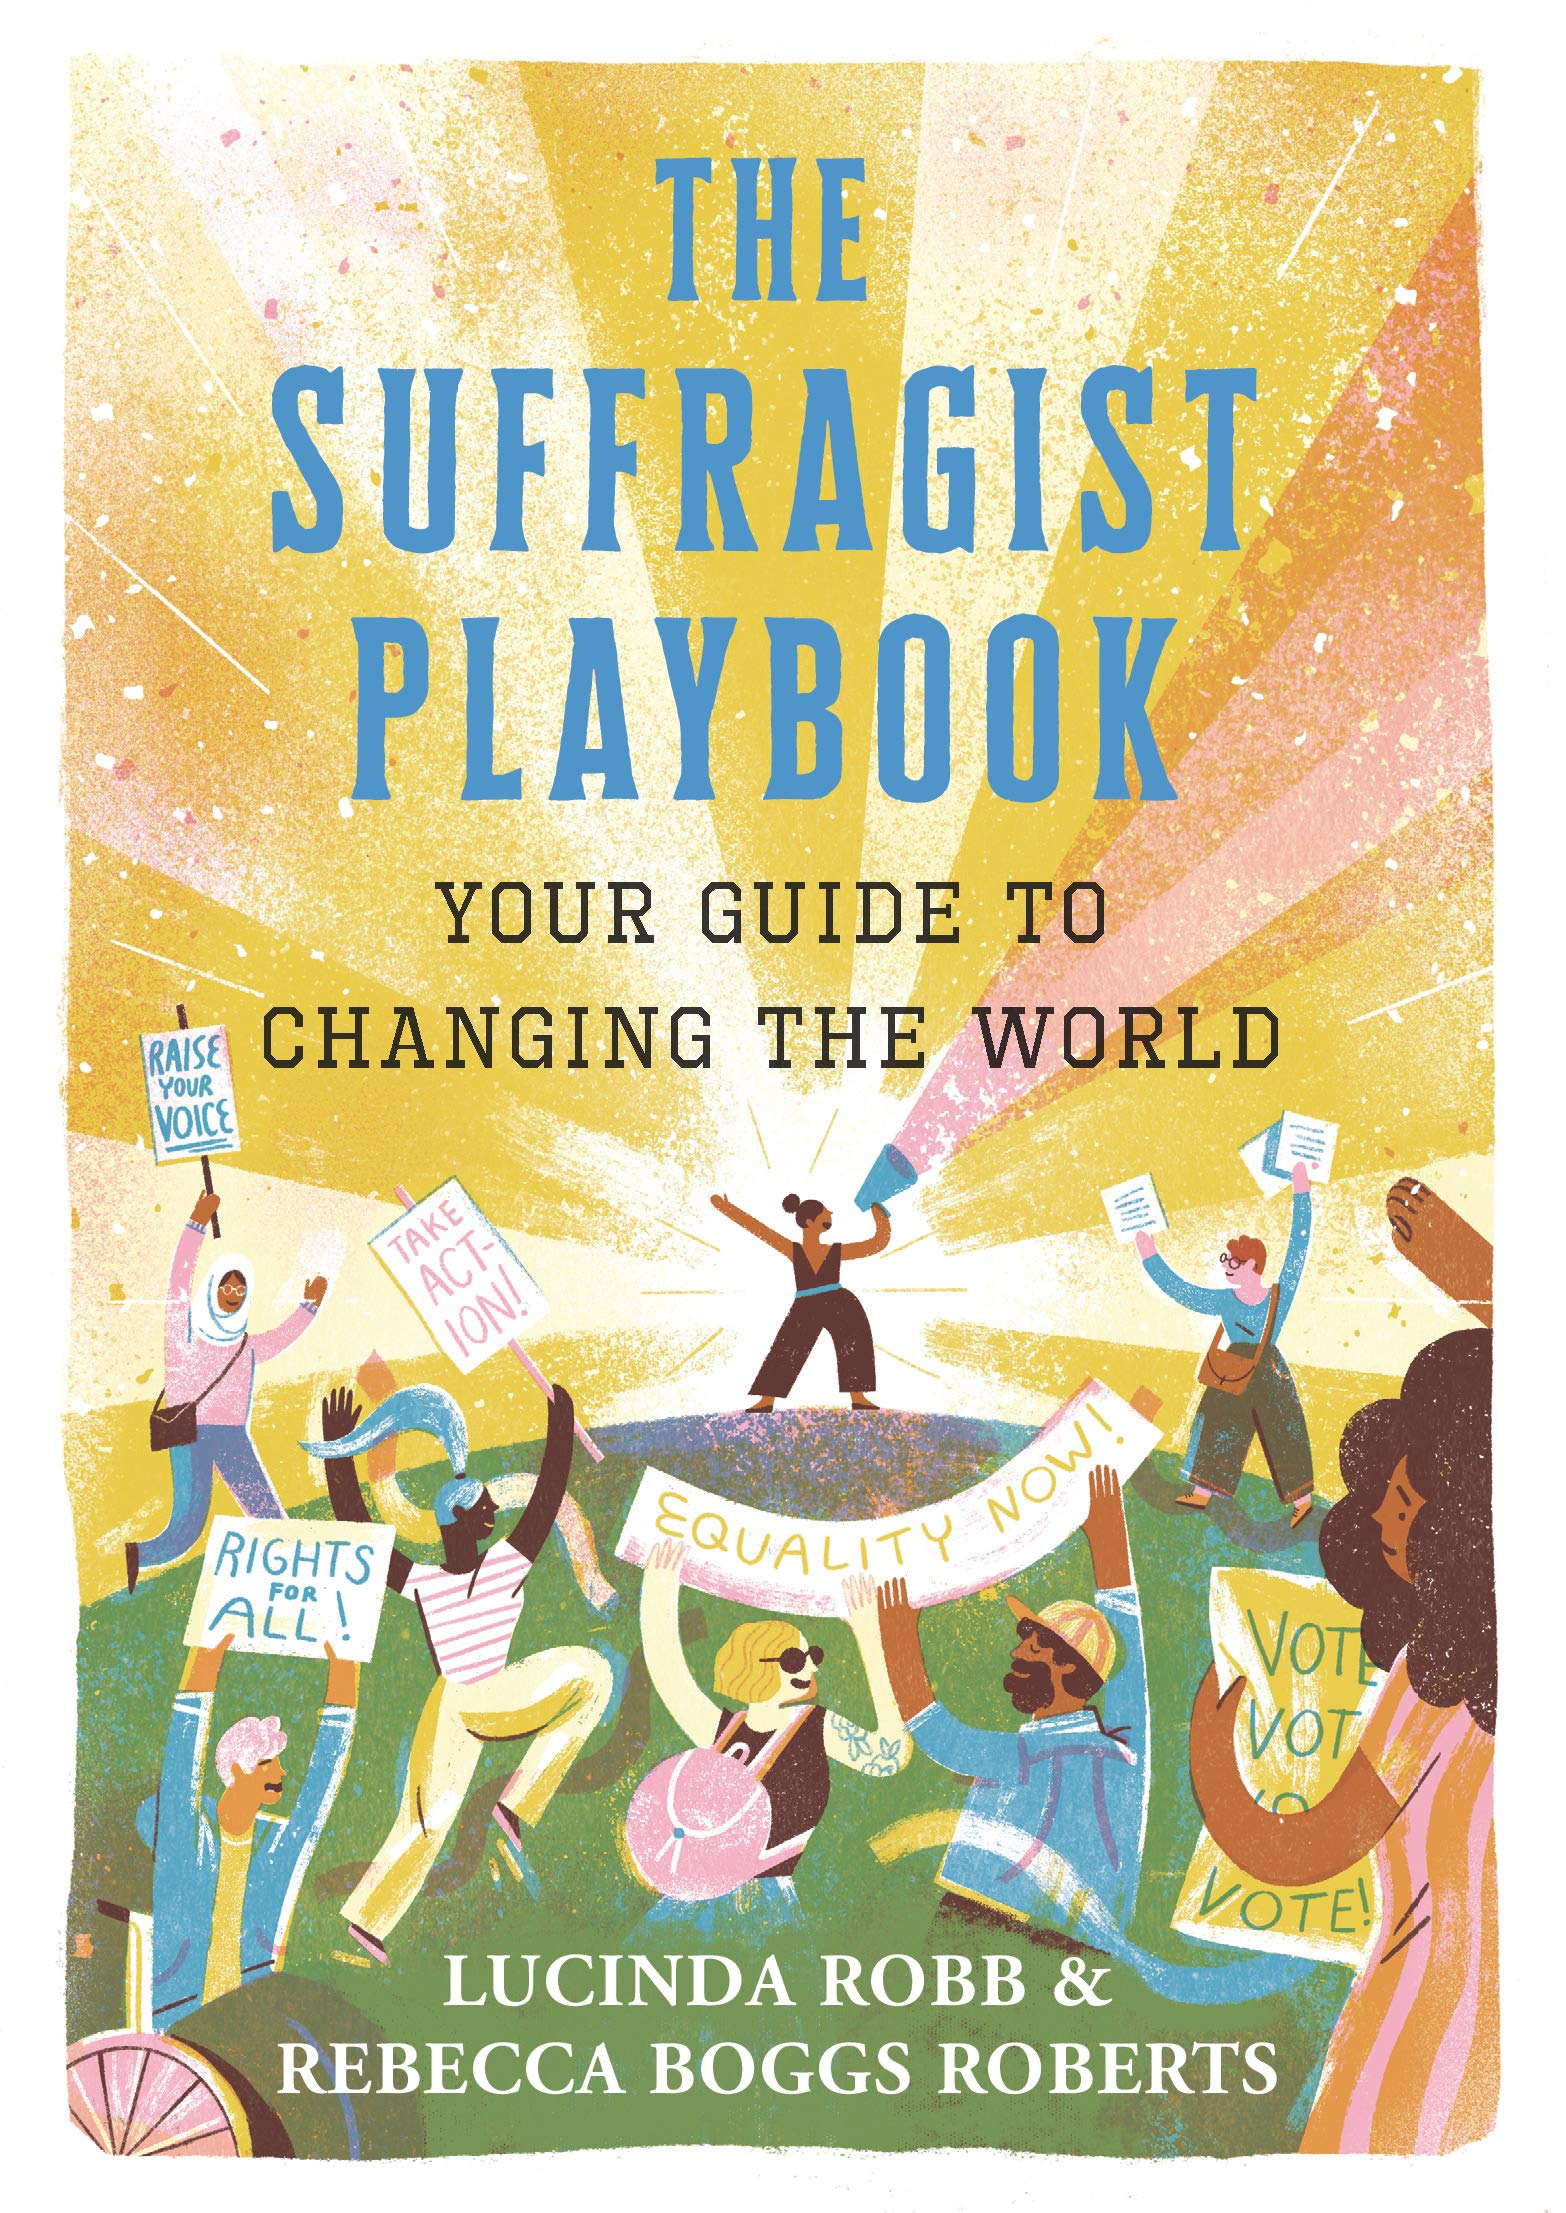 The Suffragist Playbook: Your Guide to Changing the World